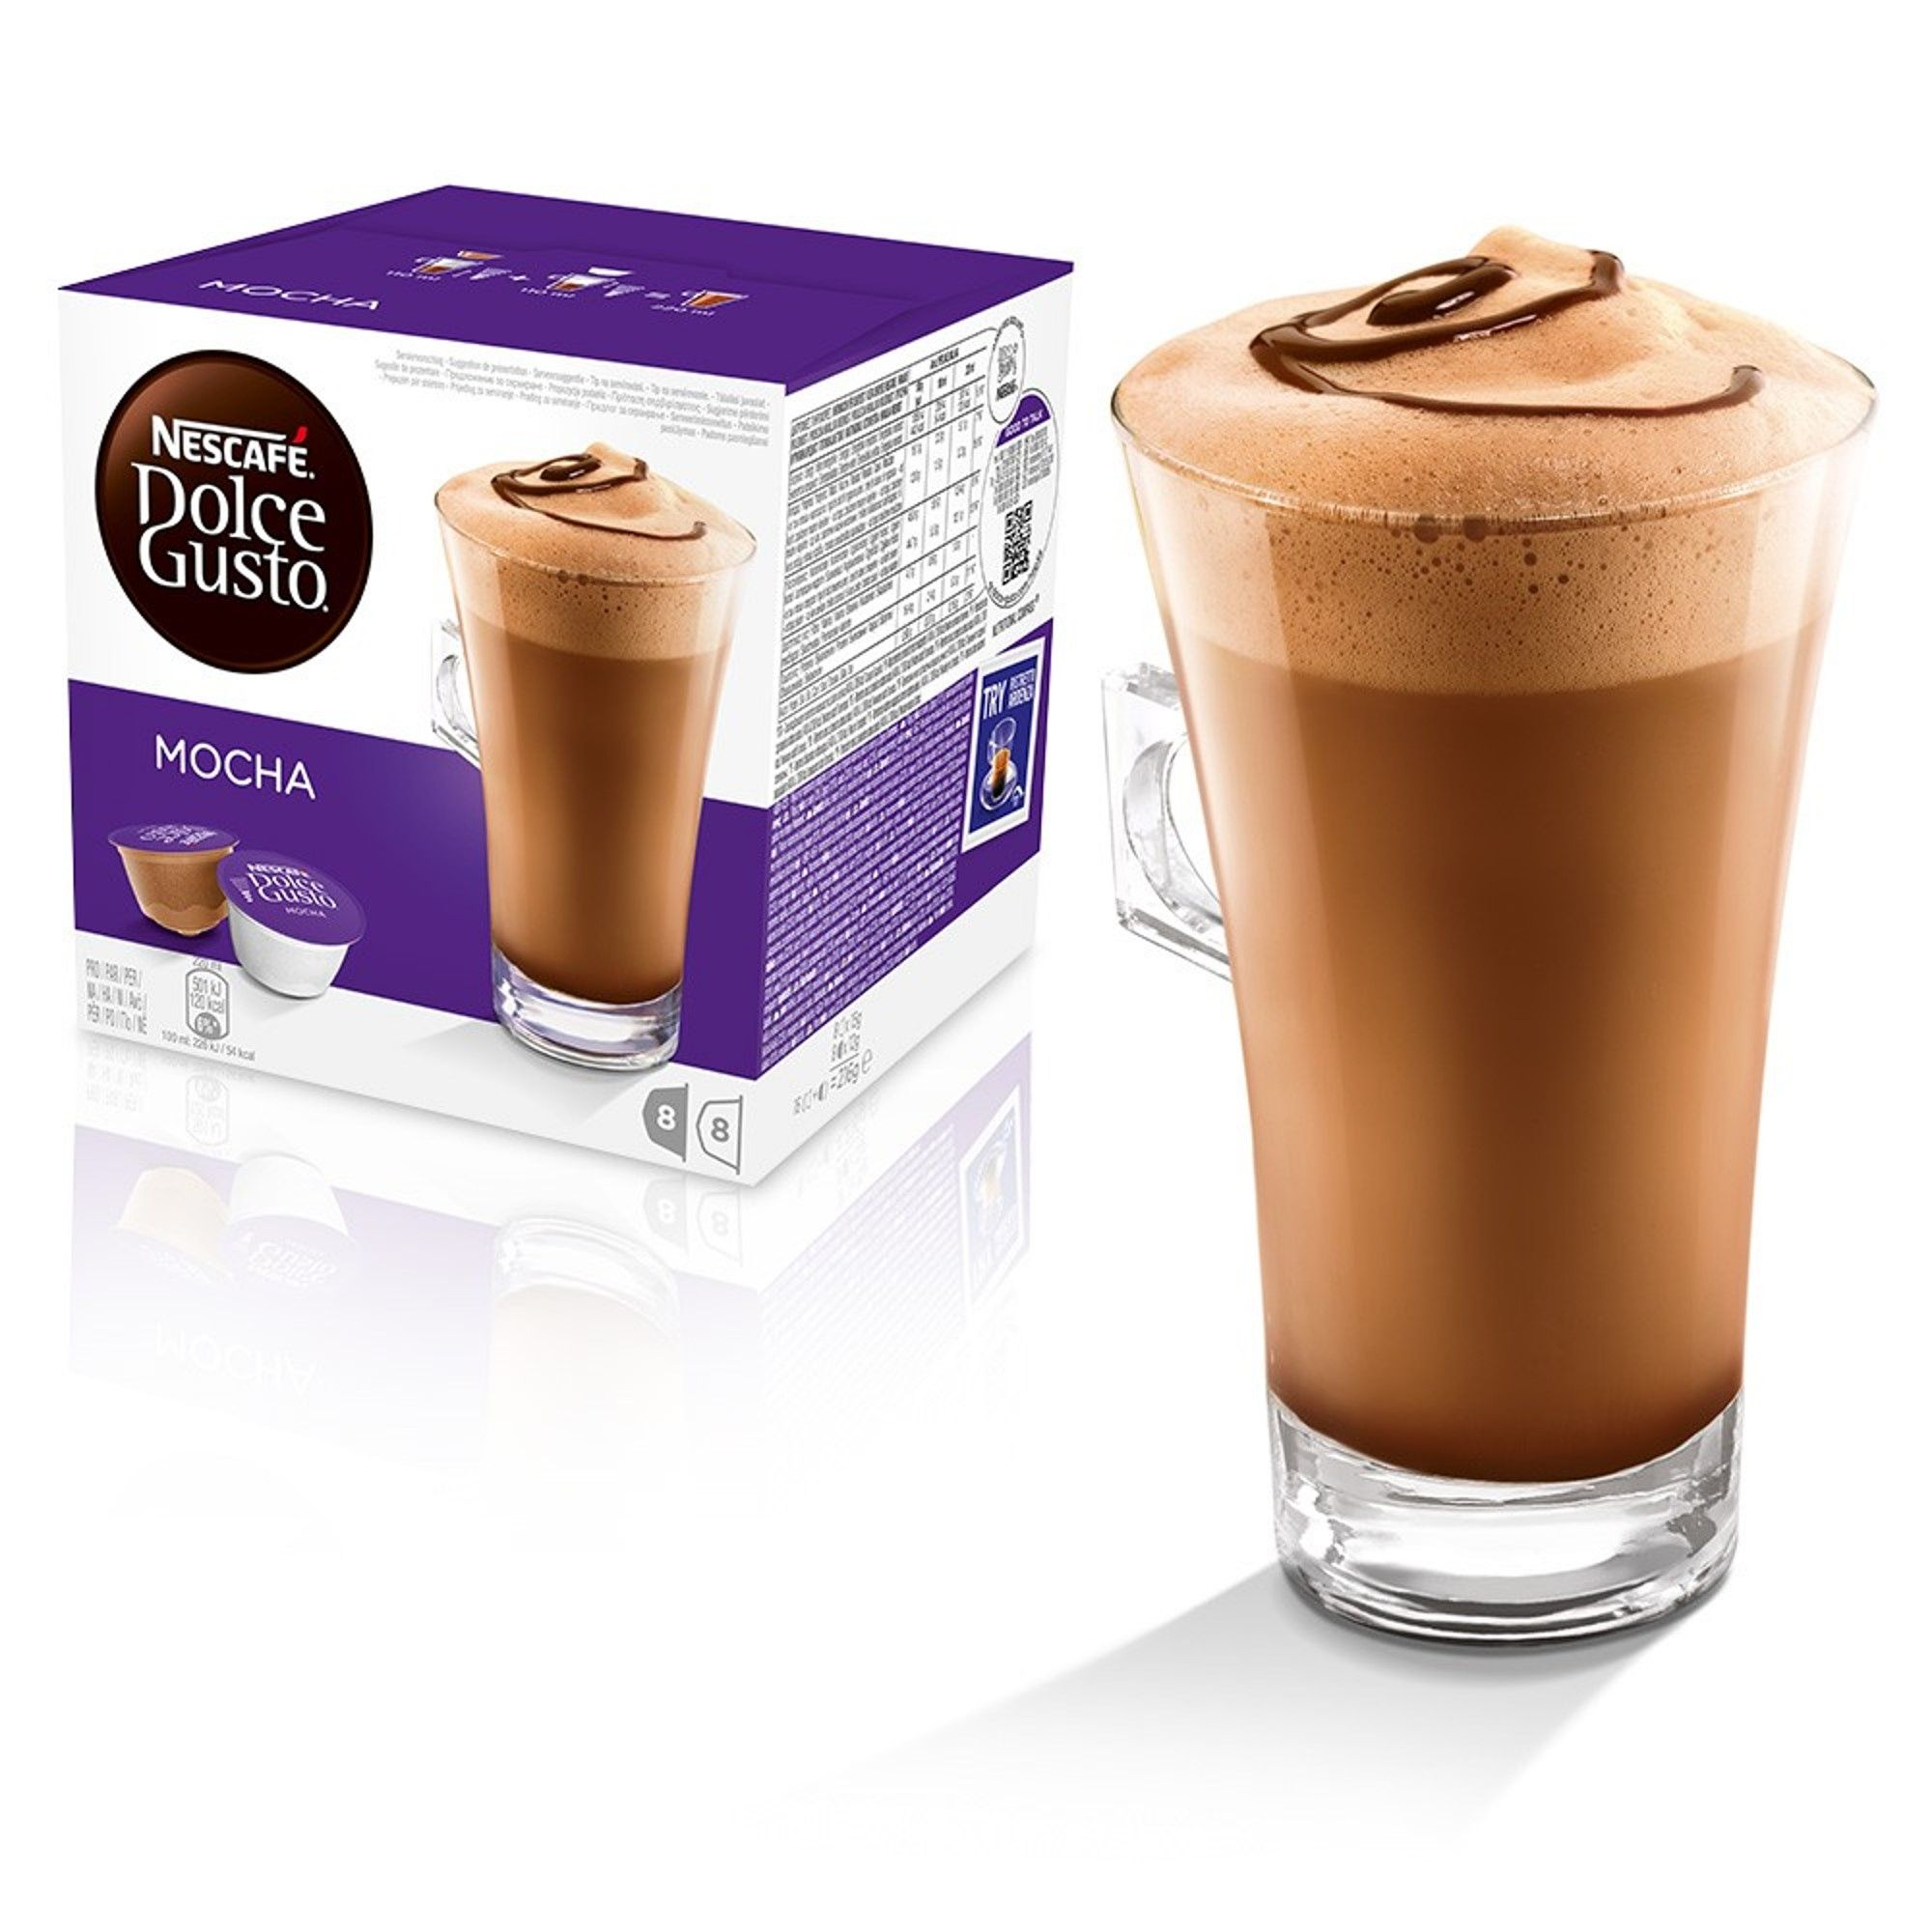 Nescafe Dolce Gusto Mocha Hot Chocolate Coffee Pods In 2019